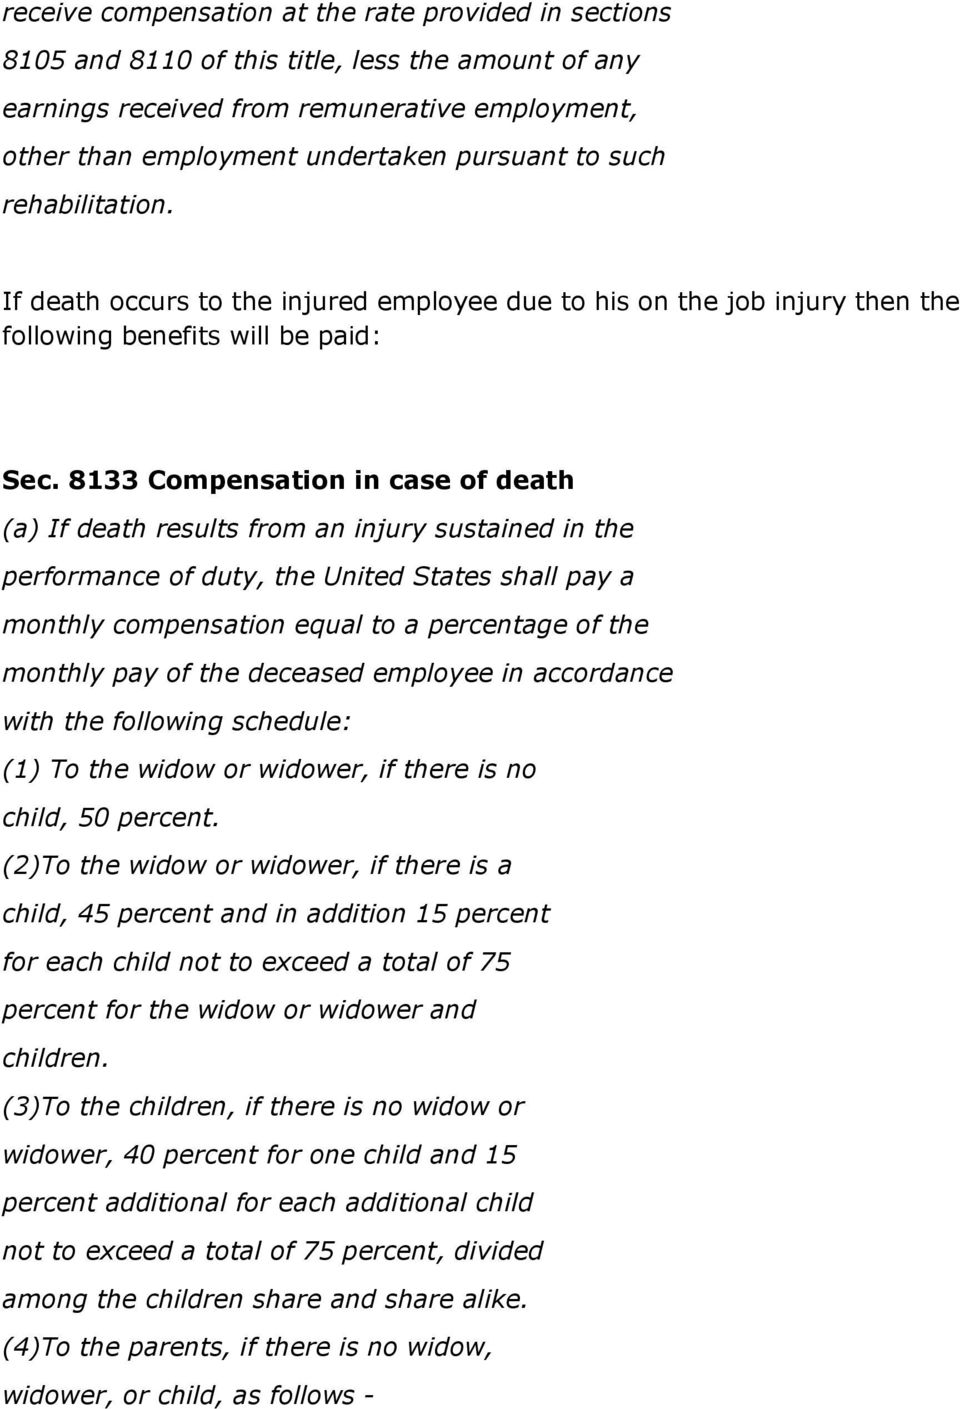 8133 Compensation in case of death (a) If death results from an injury sustained in the performance of duty, the United States shall pay a monthly compensation equal to a percentage of the monthly